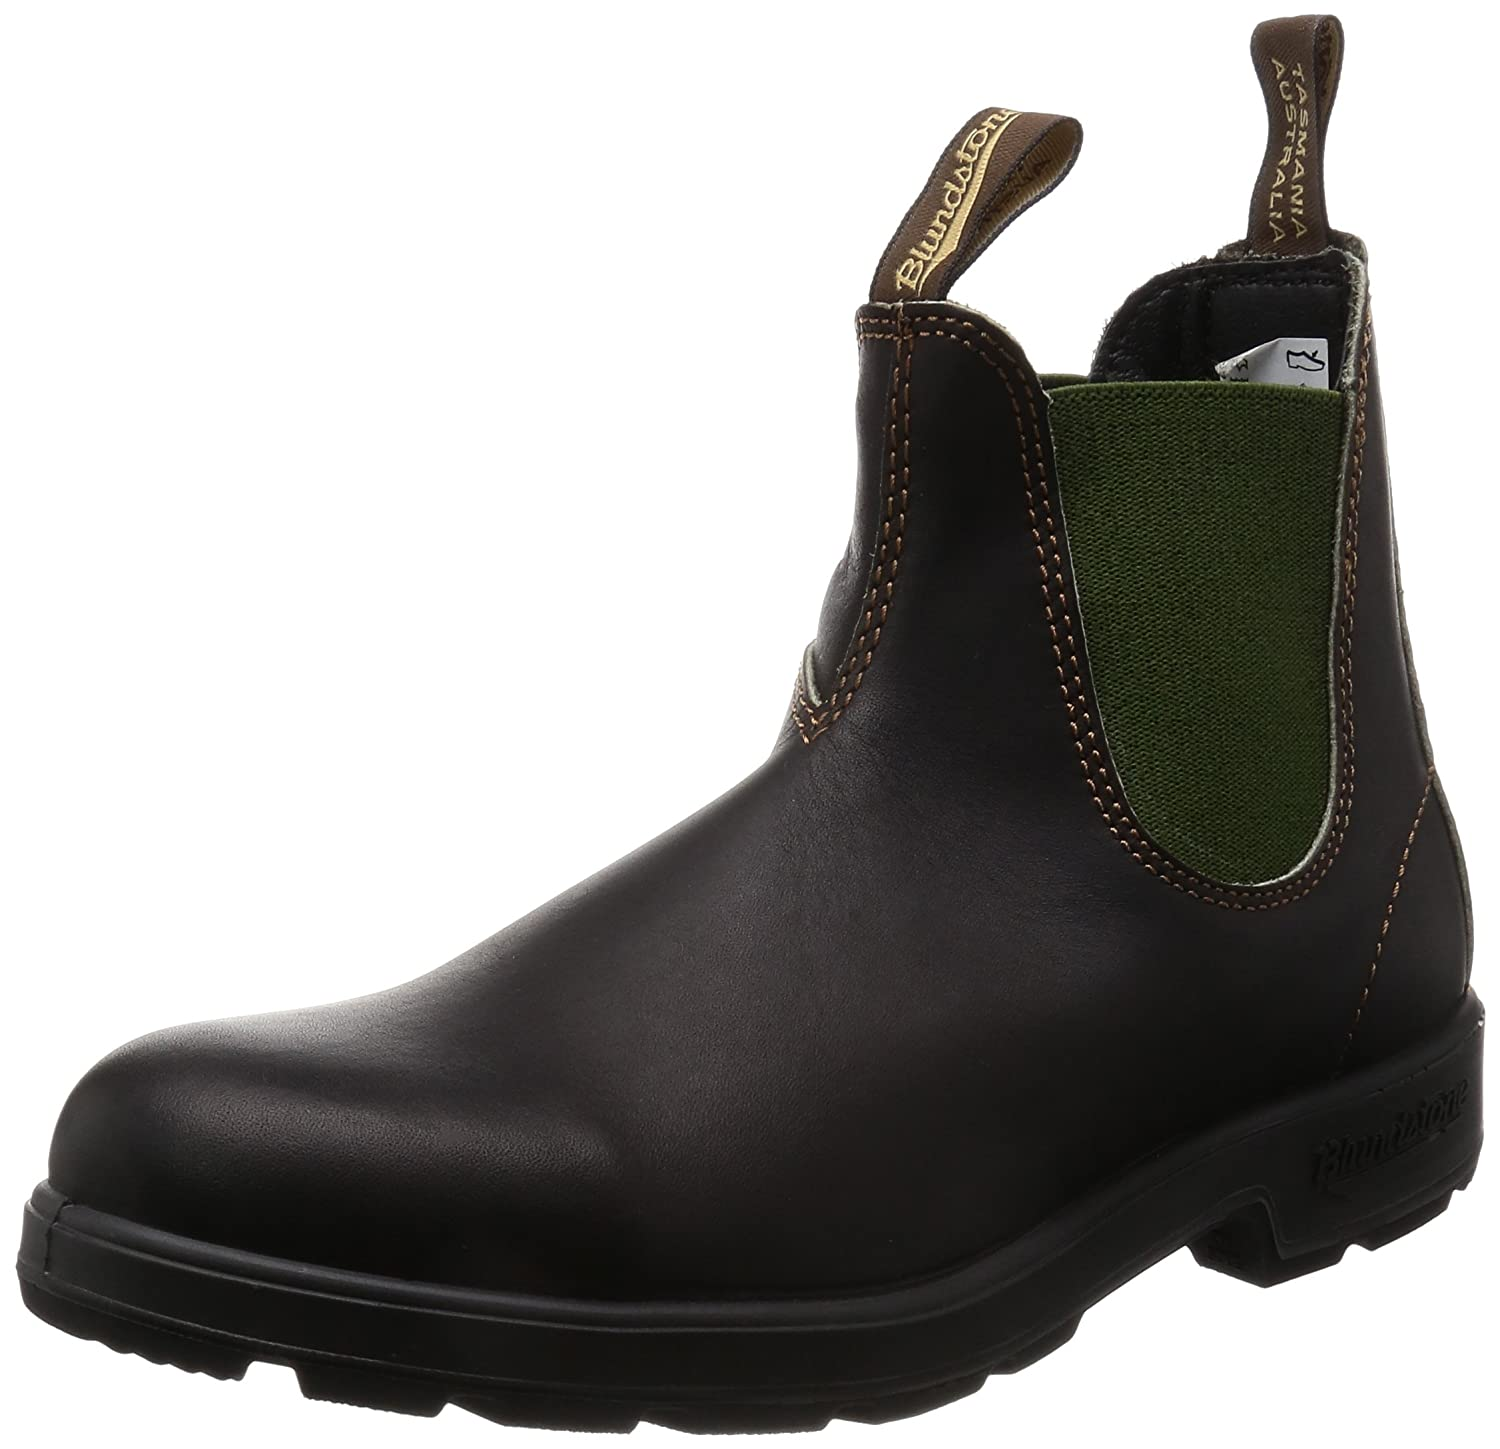 Blundstone Unisex Original 500 Series B00GIBVSWE 4.5 M US Mens/ 6.5 M US Womens/ 3.5 AU|Stout Brown/Olive